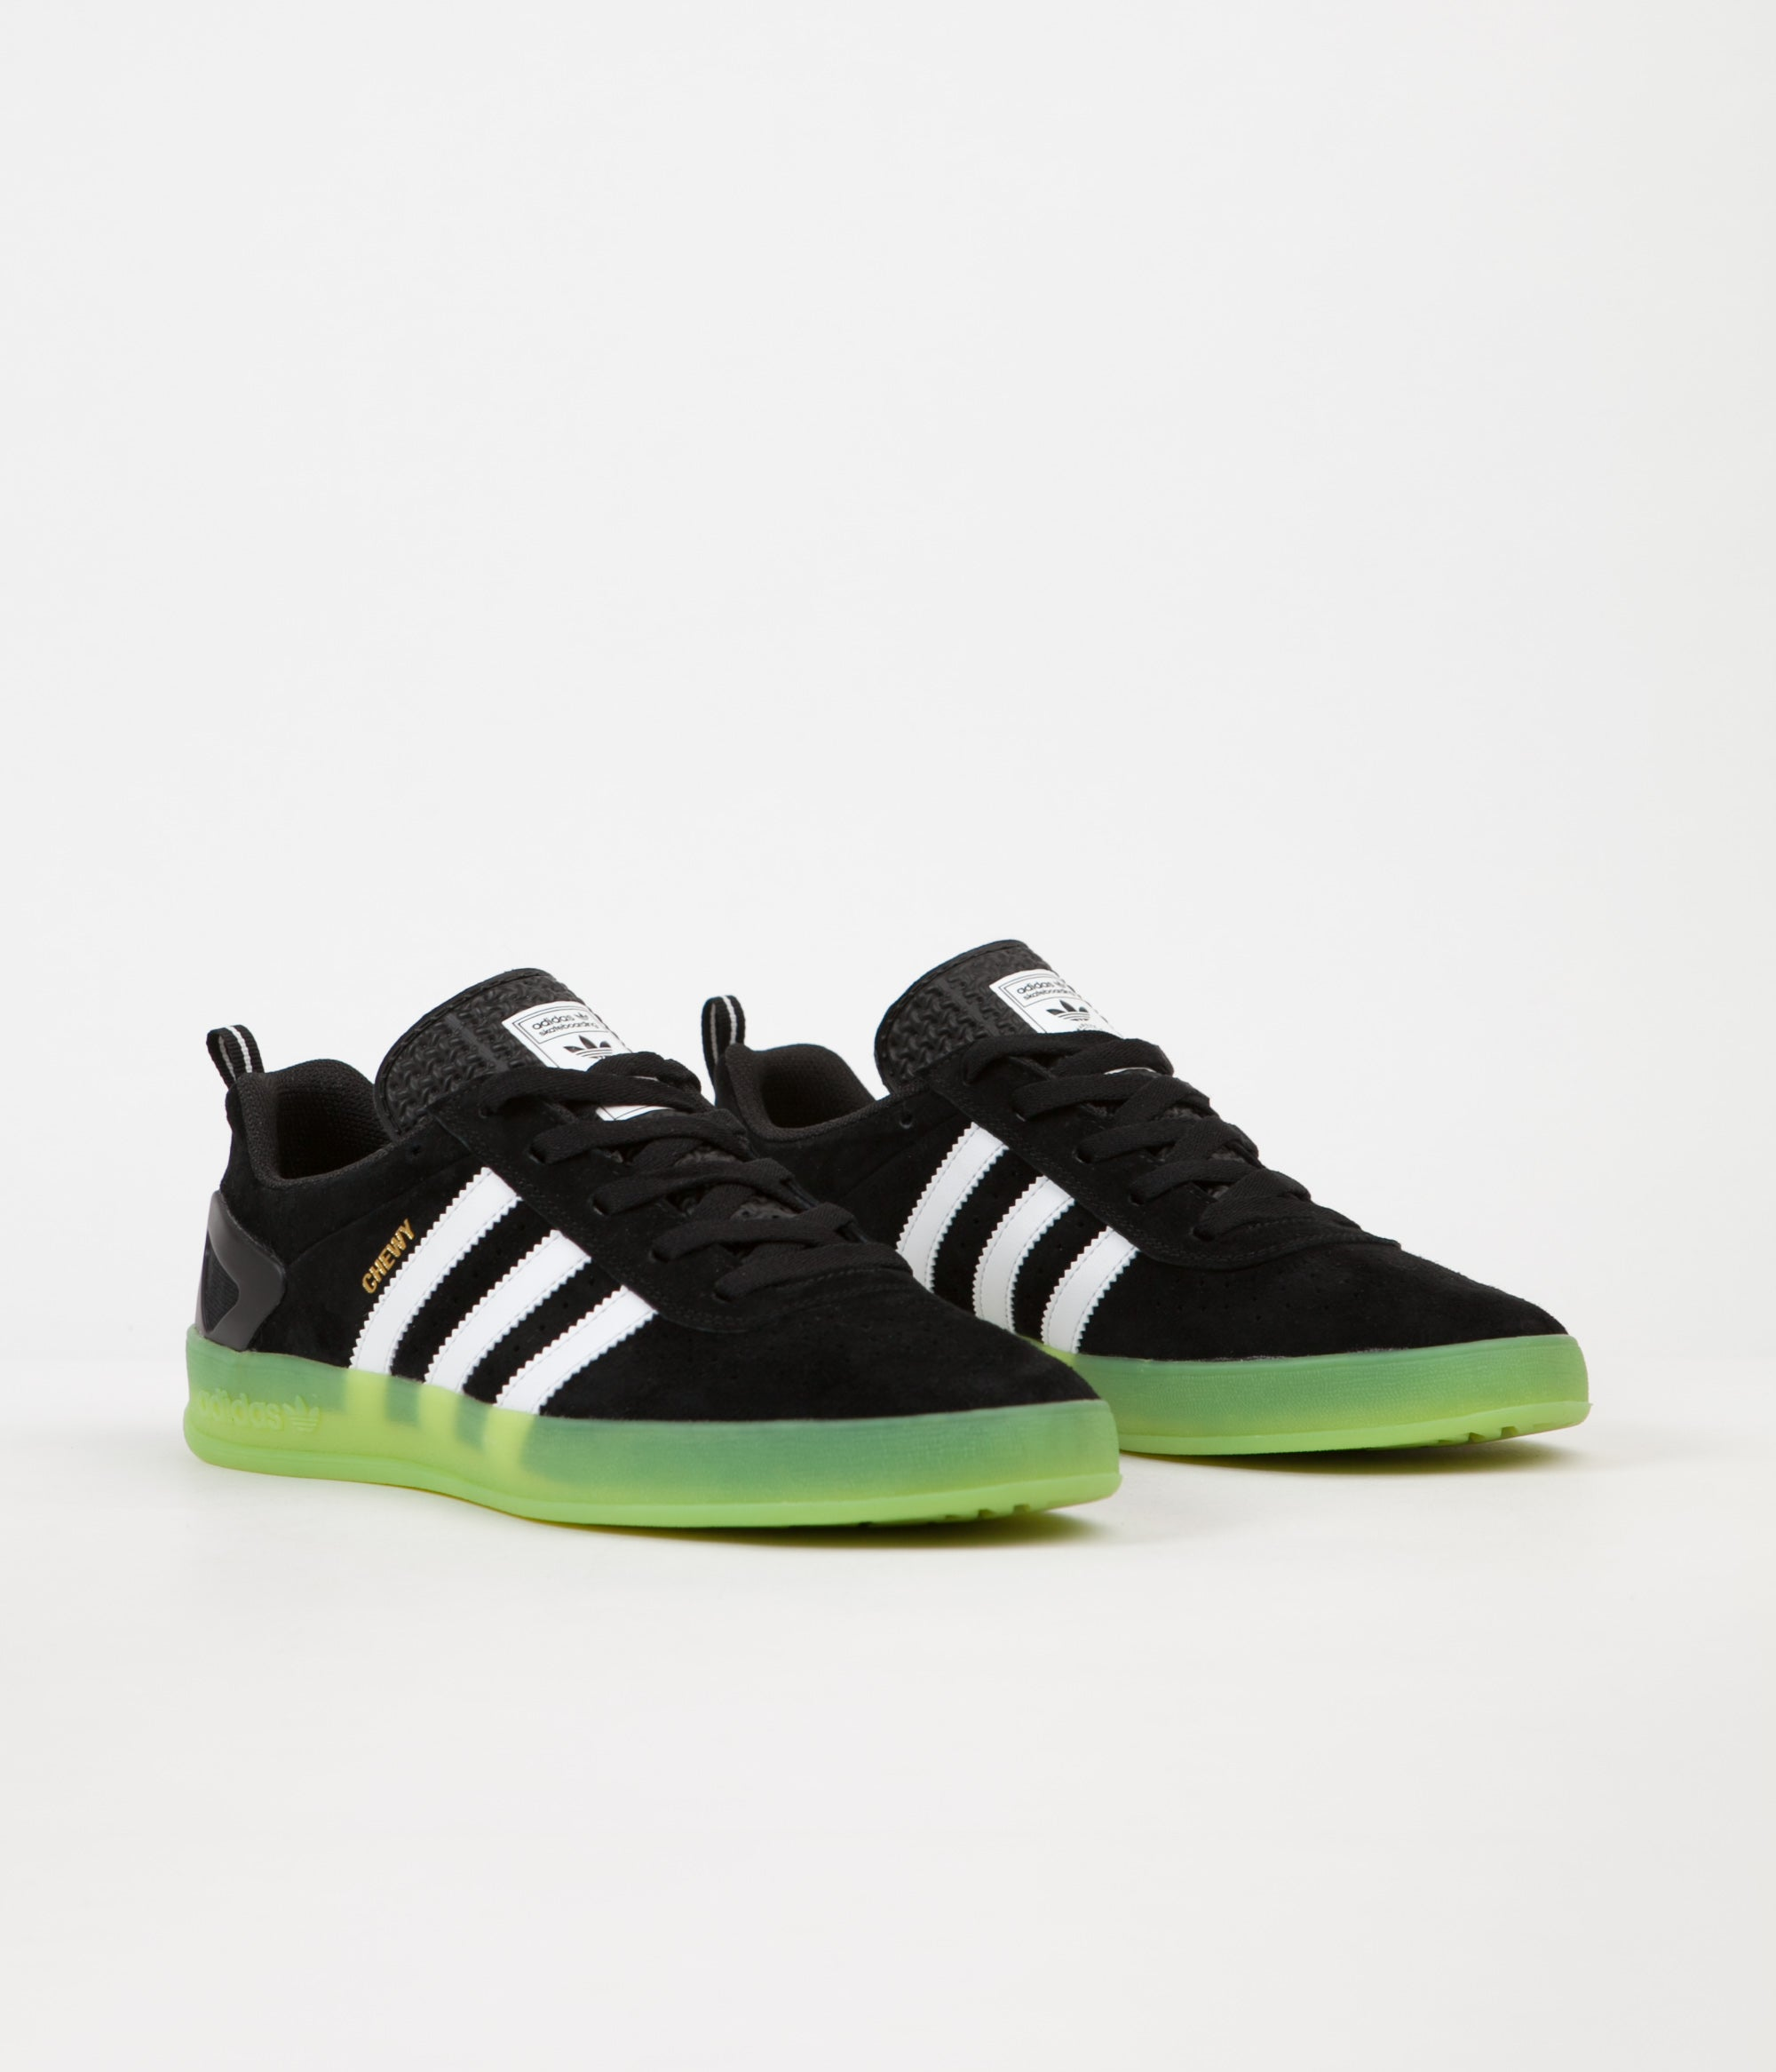 ... Green Adidas x Palace Pro 'Chewy' Shoes - Black / White ...